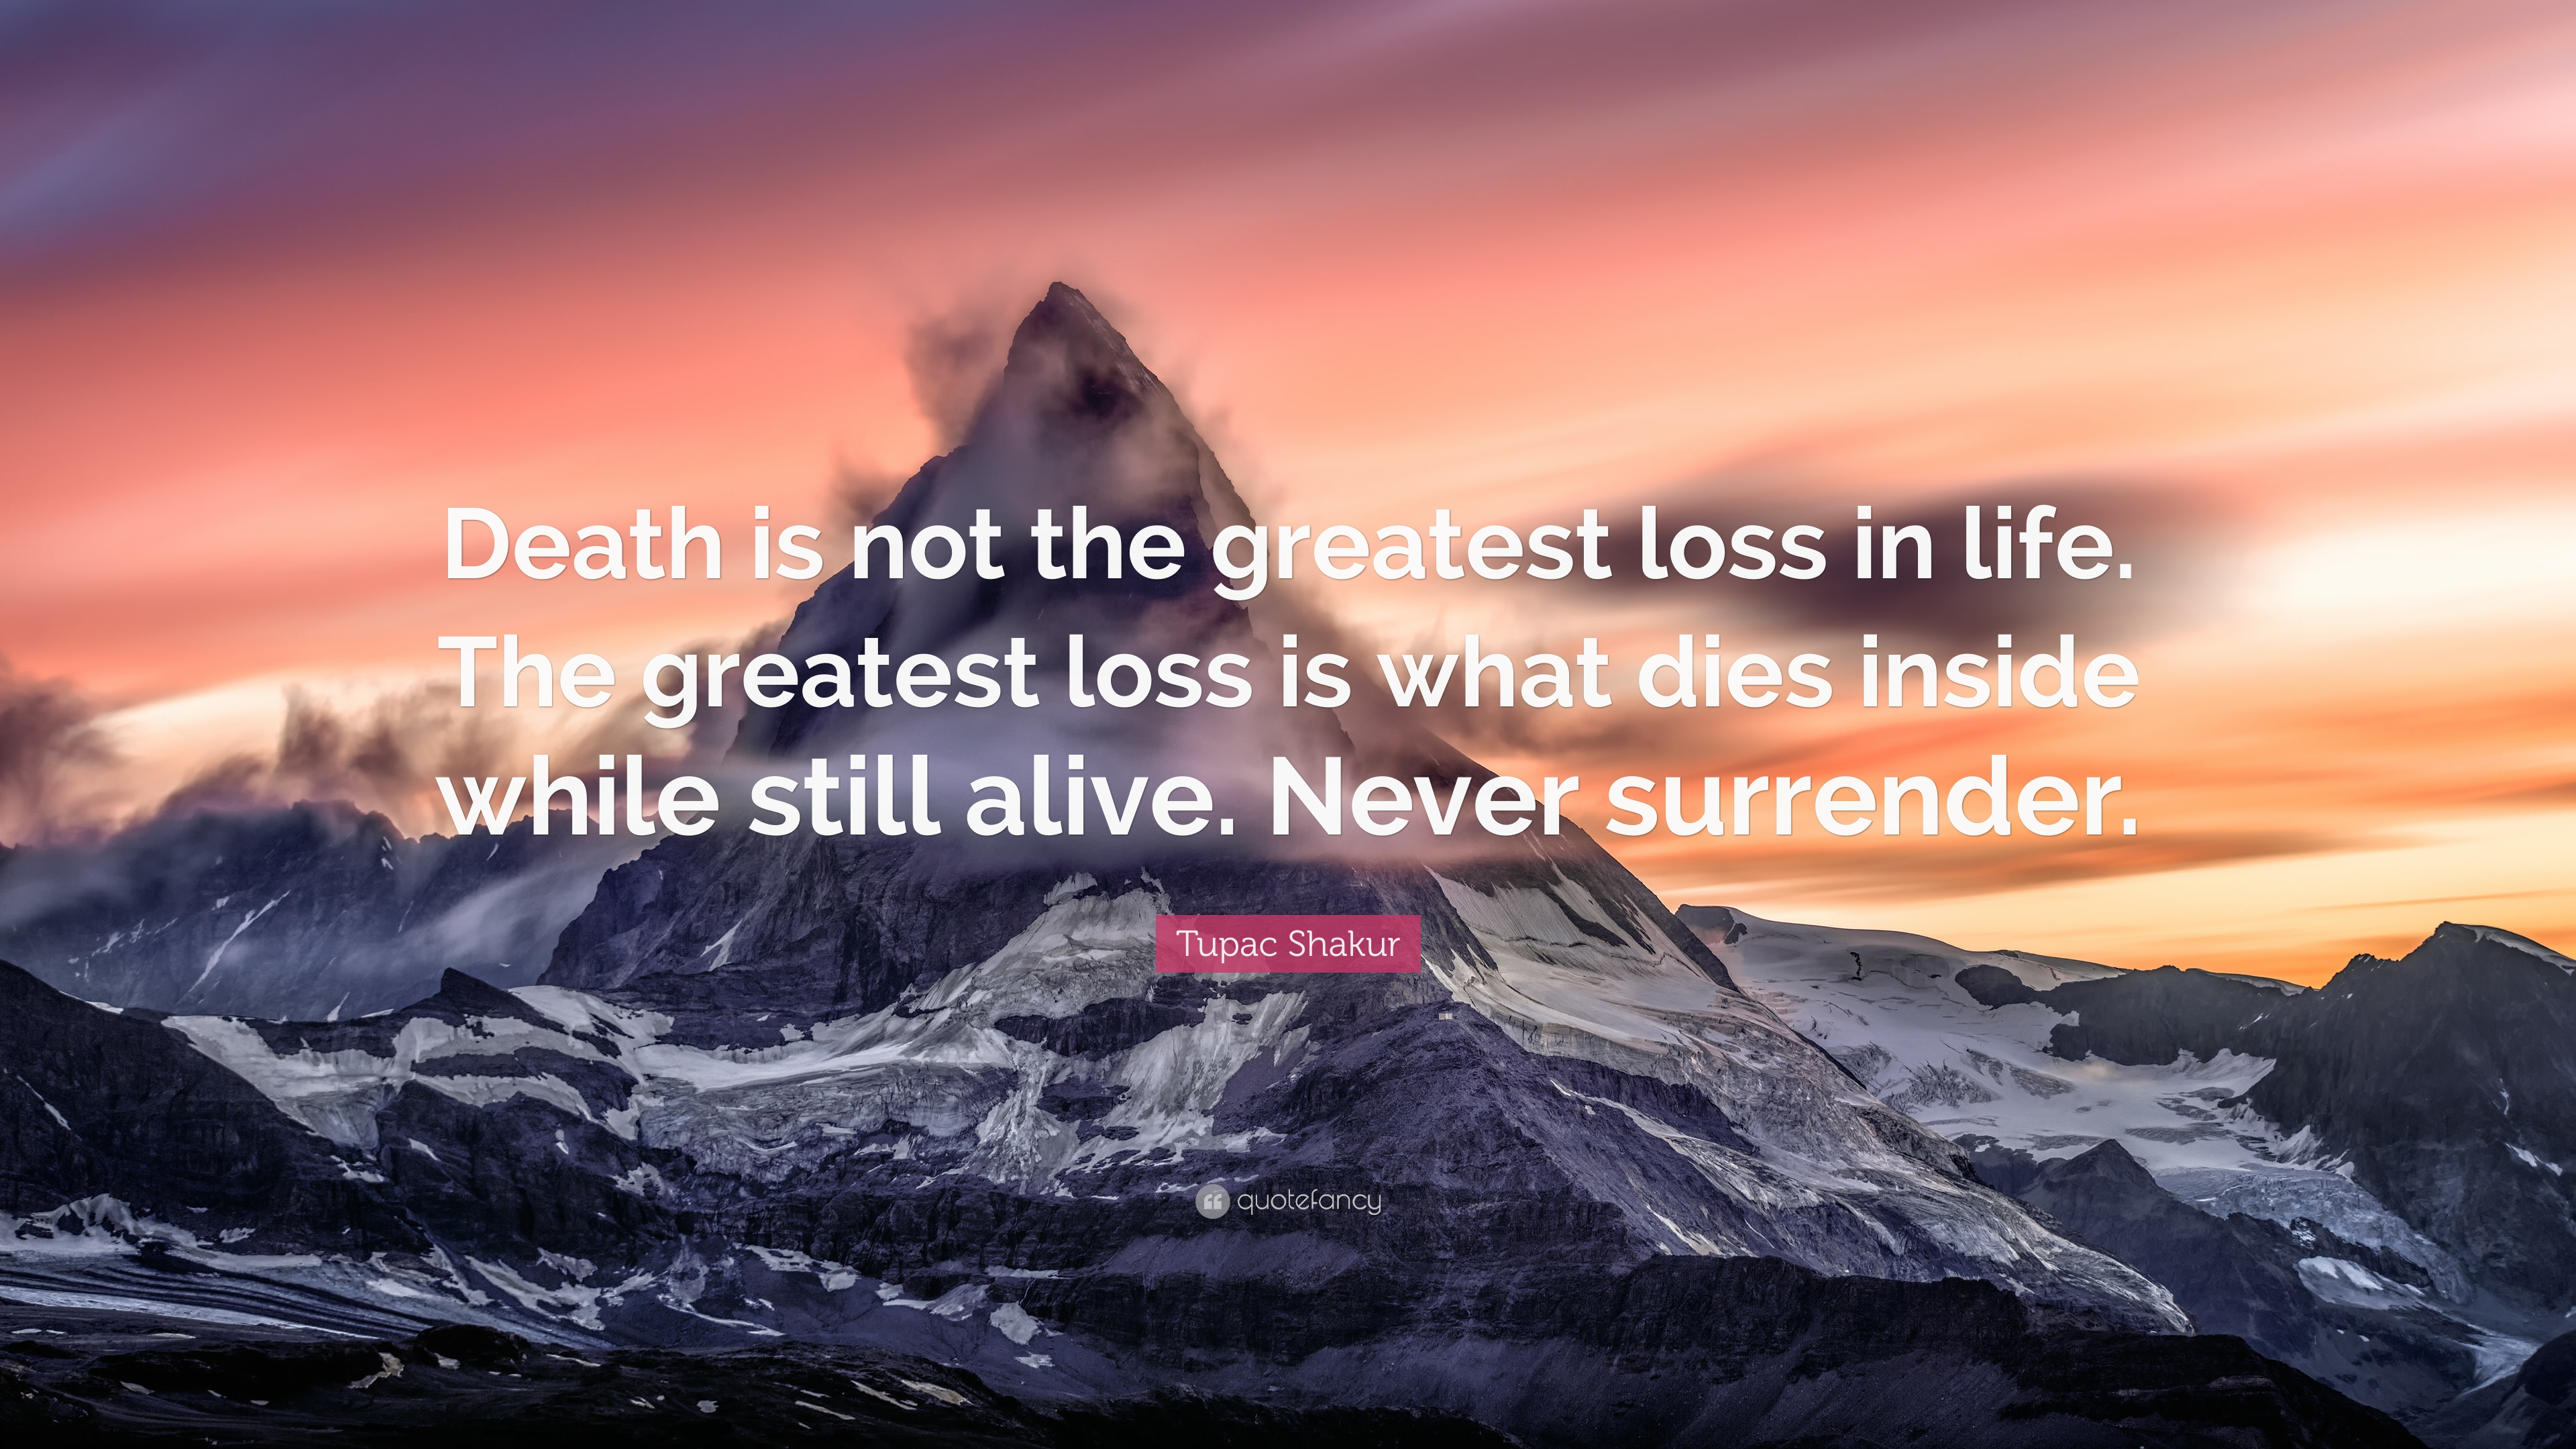 Tupac Shakur Quote: U201cDeath Is Not The Greatest Loss In Life. The Greatest